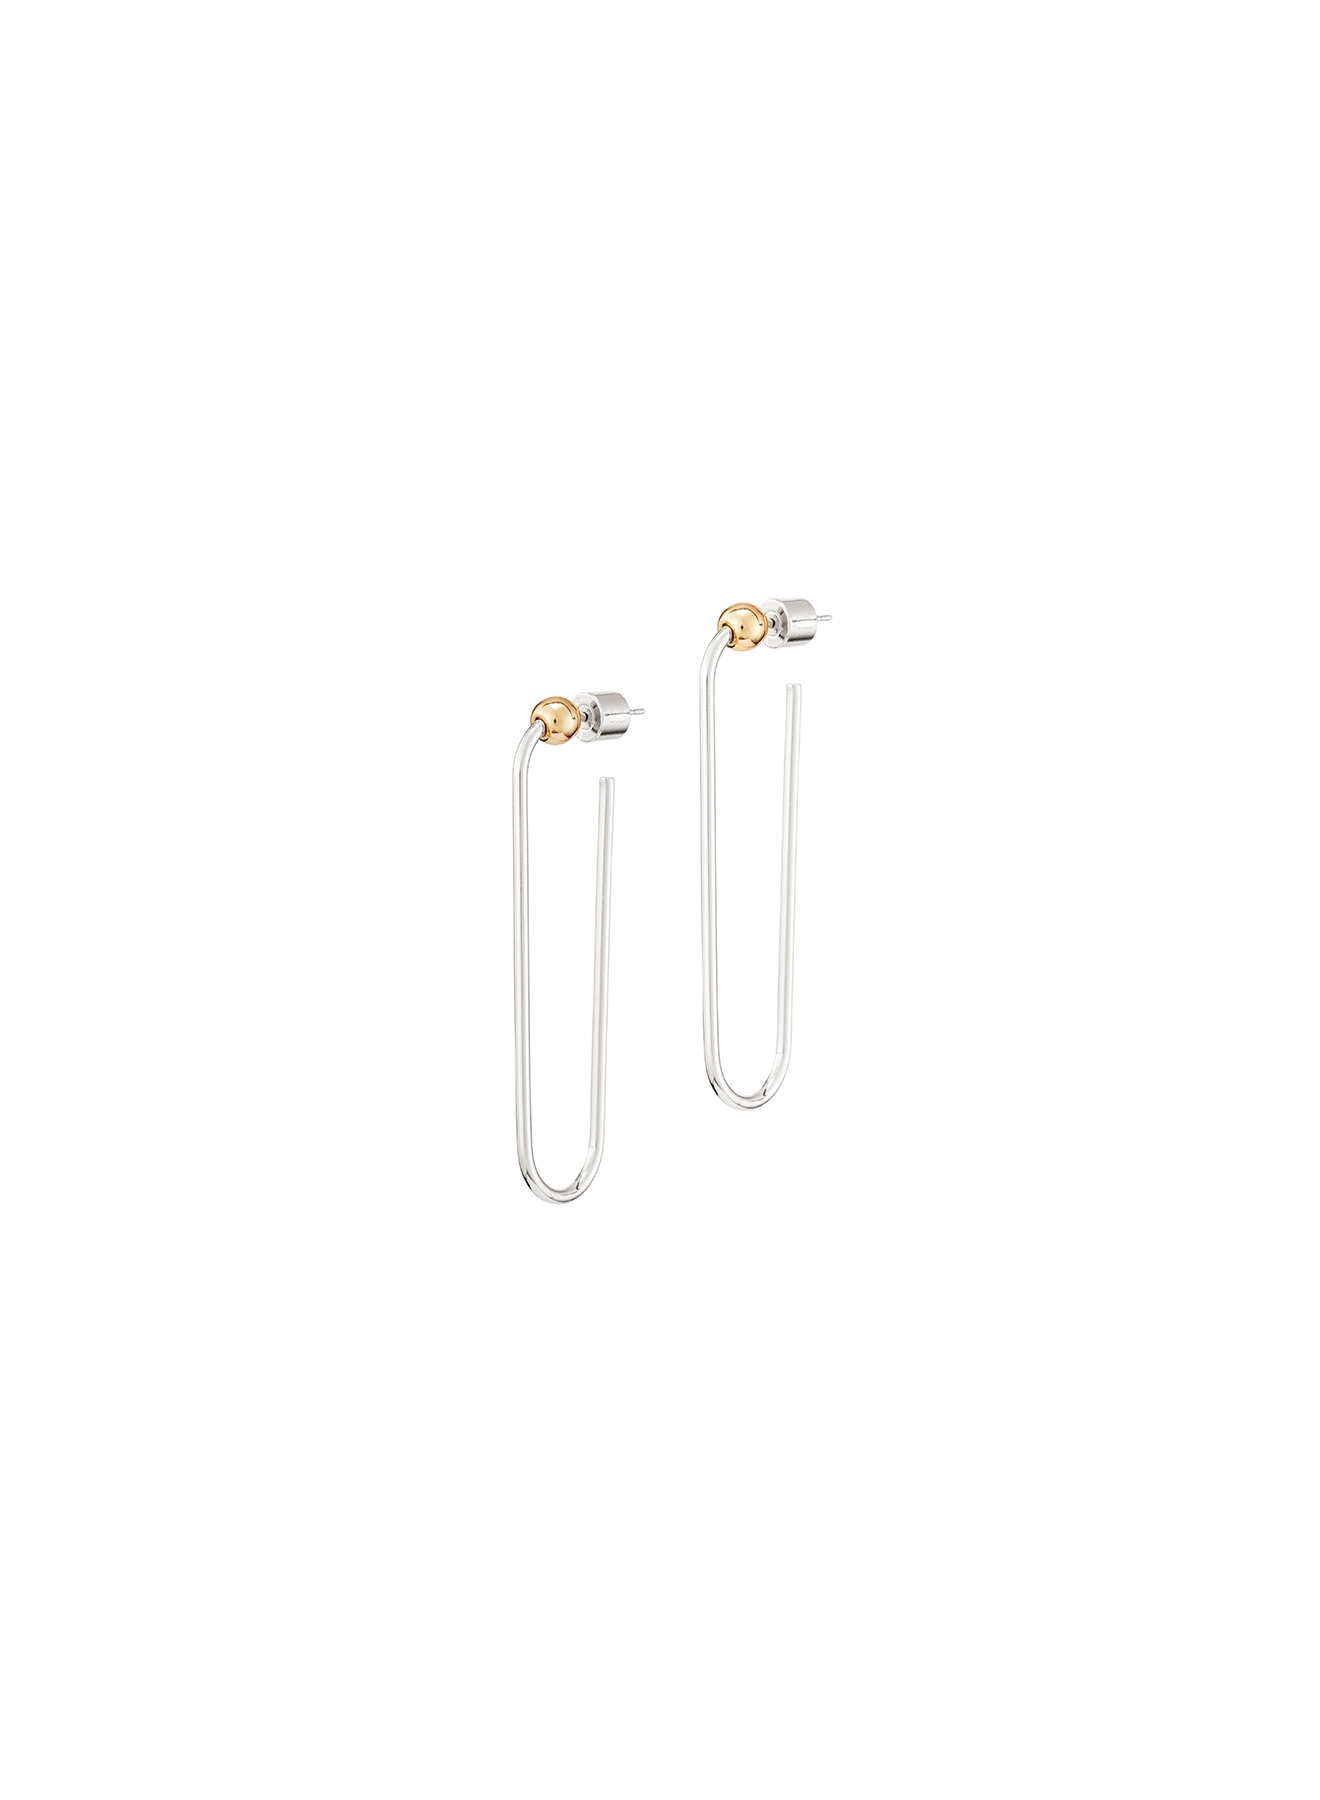 JENNY BIRD - ICON HOOPS LONG IN TWO TONE